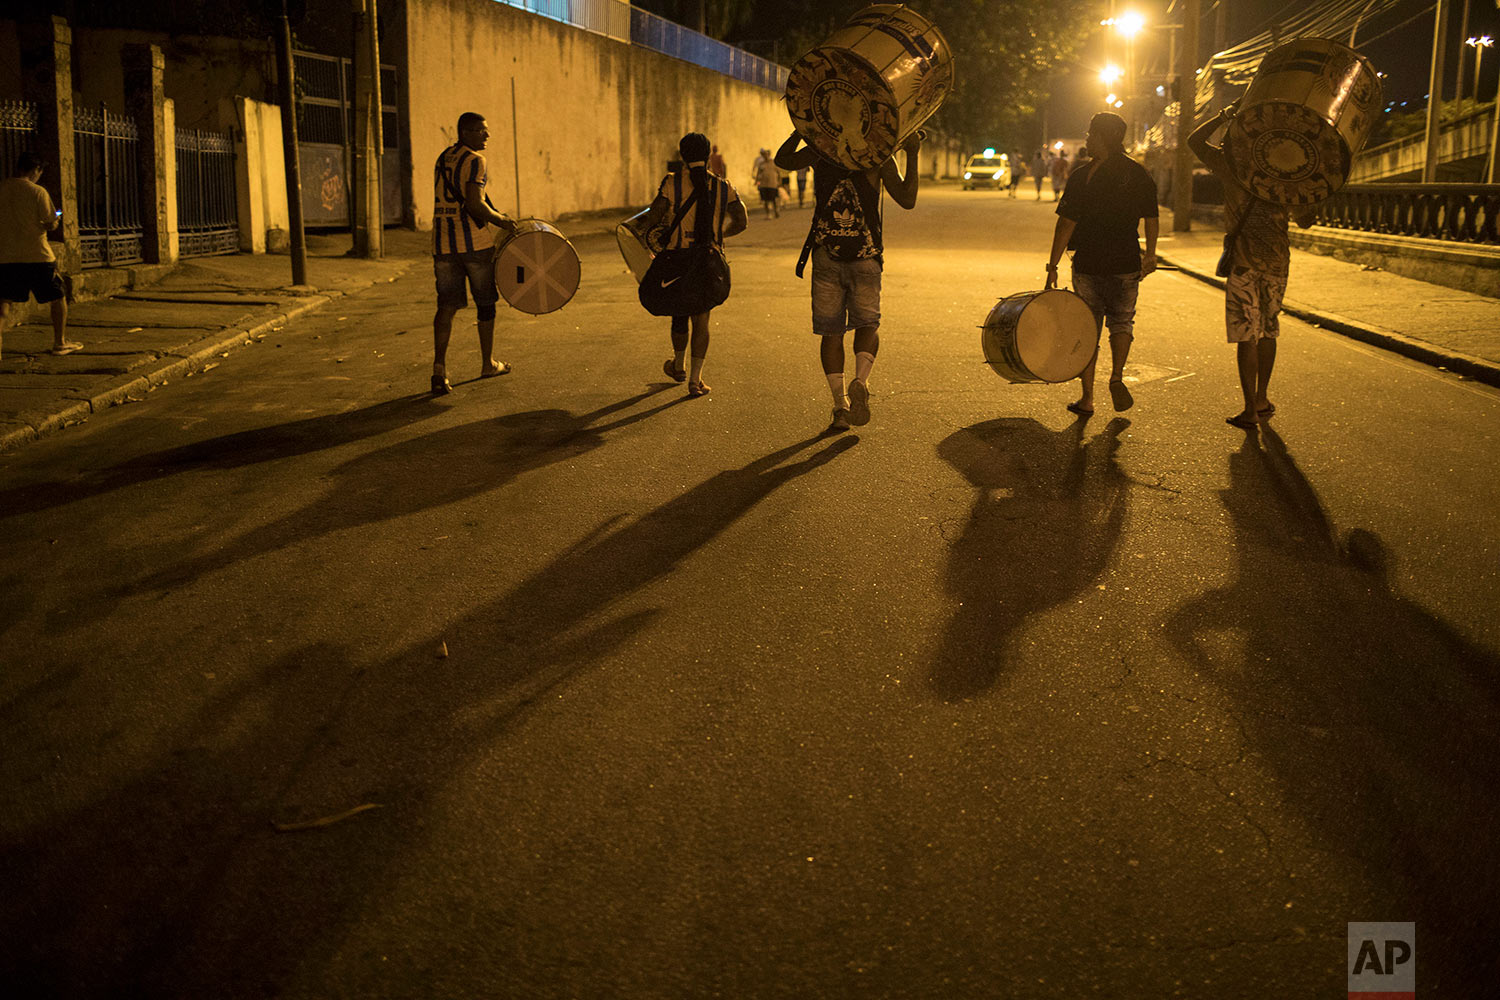 """In this Jan. 22, 2018 photo, drummers from the Paraiso do Tuiuti samba school walk to a street rehearsal of their dances and songs, which this year make reference to Brazil's history with slavery, in Rio de Janeiro, Brazil. """"Our music questions whether slavery is actually over,"""" said Jack Vasconcelos, the group's art director. (AP Photo/Leo Correa)"""